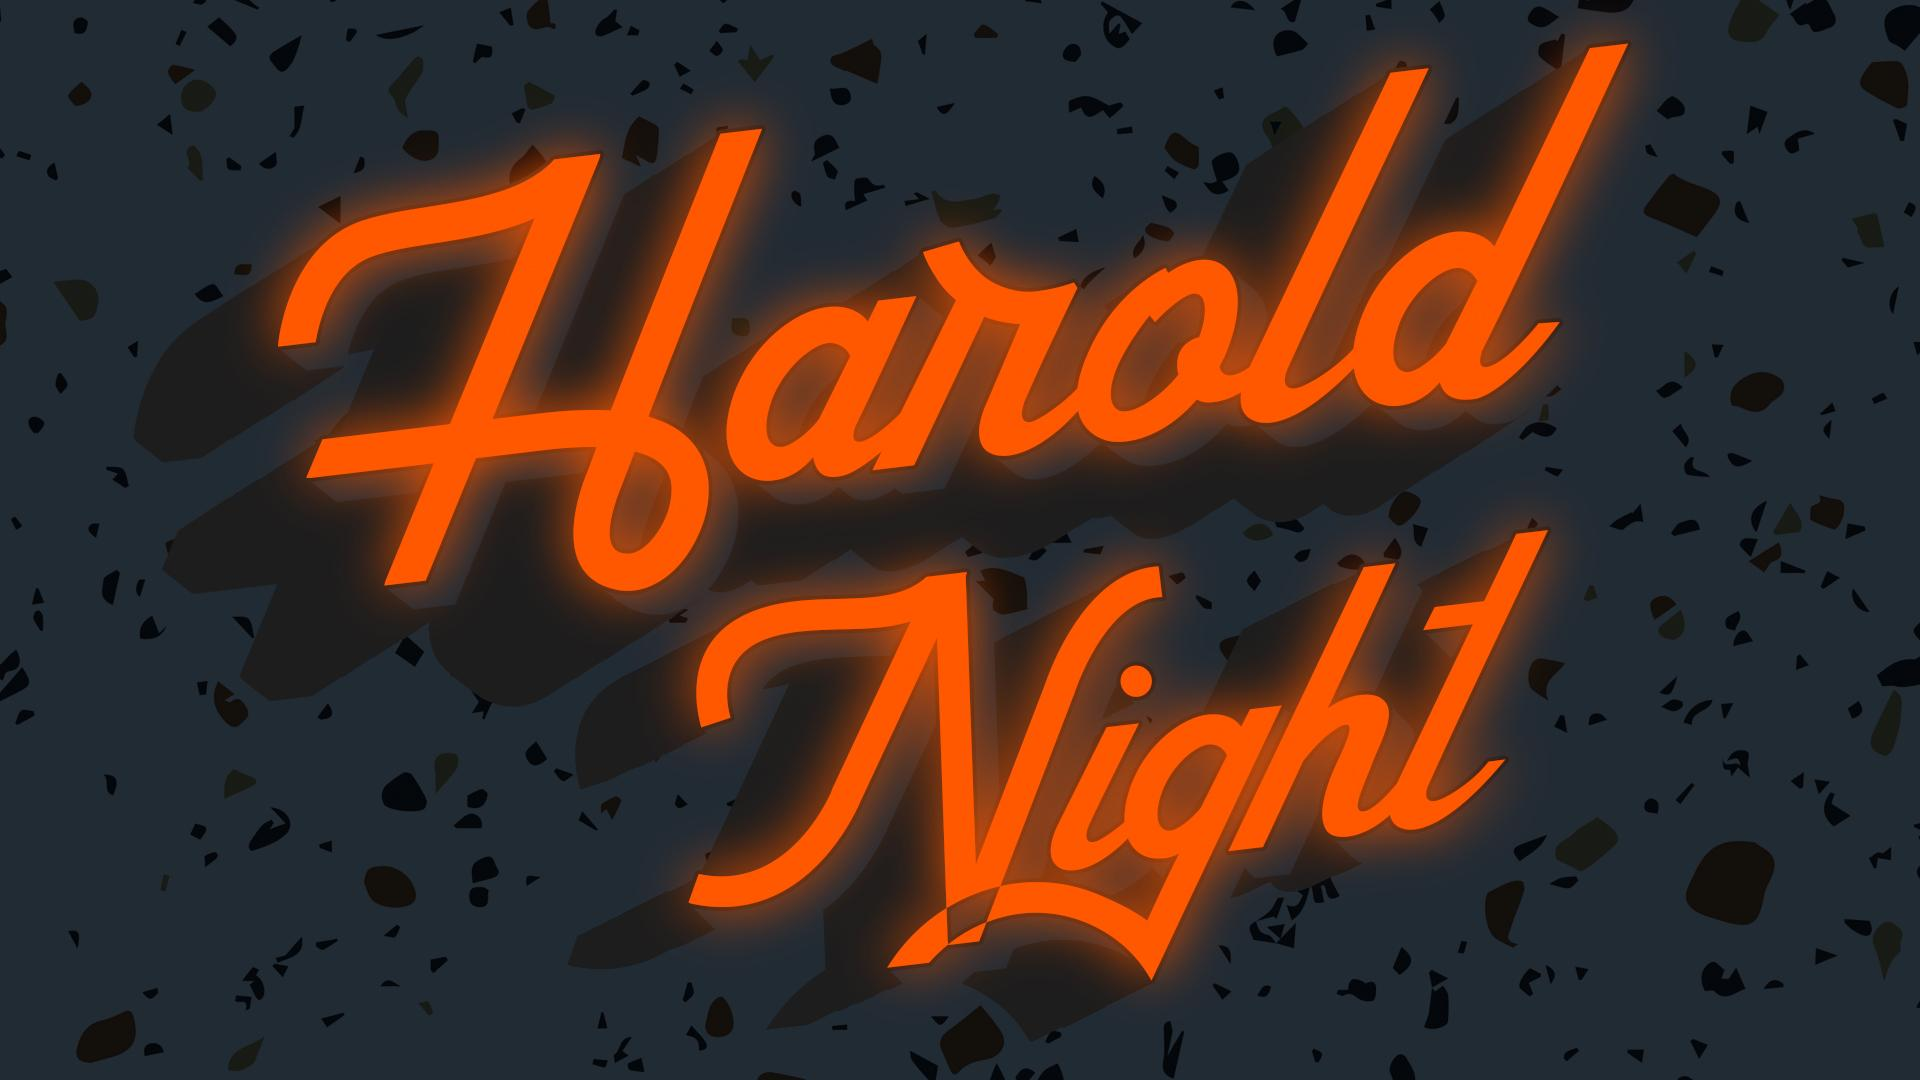 HAROLD NIGHT w/ Meridian & The Harold Team